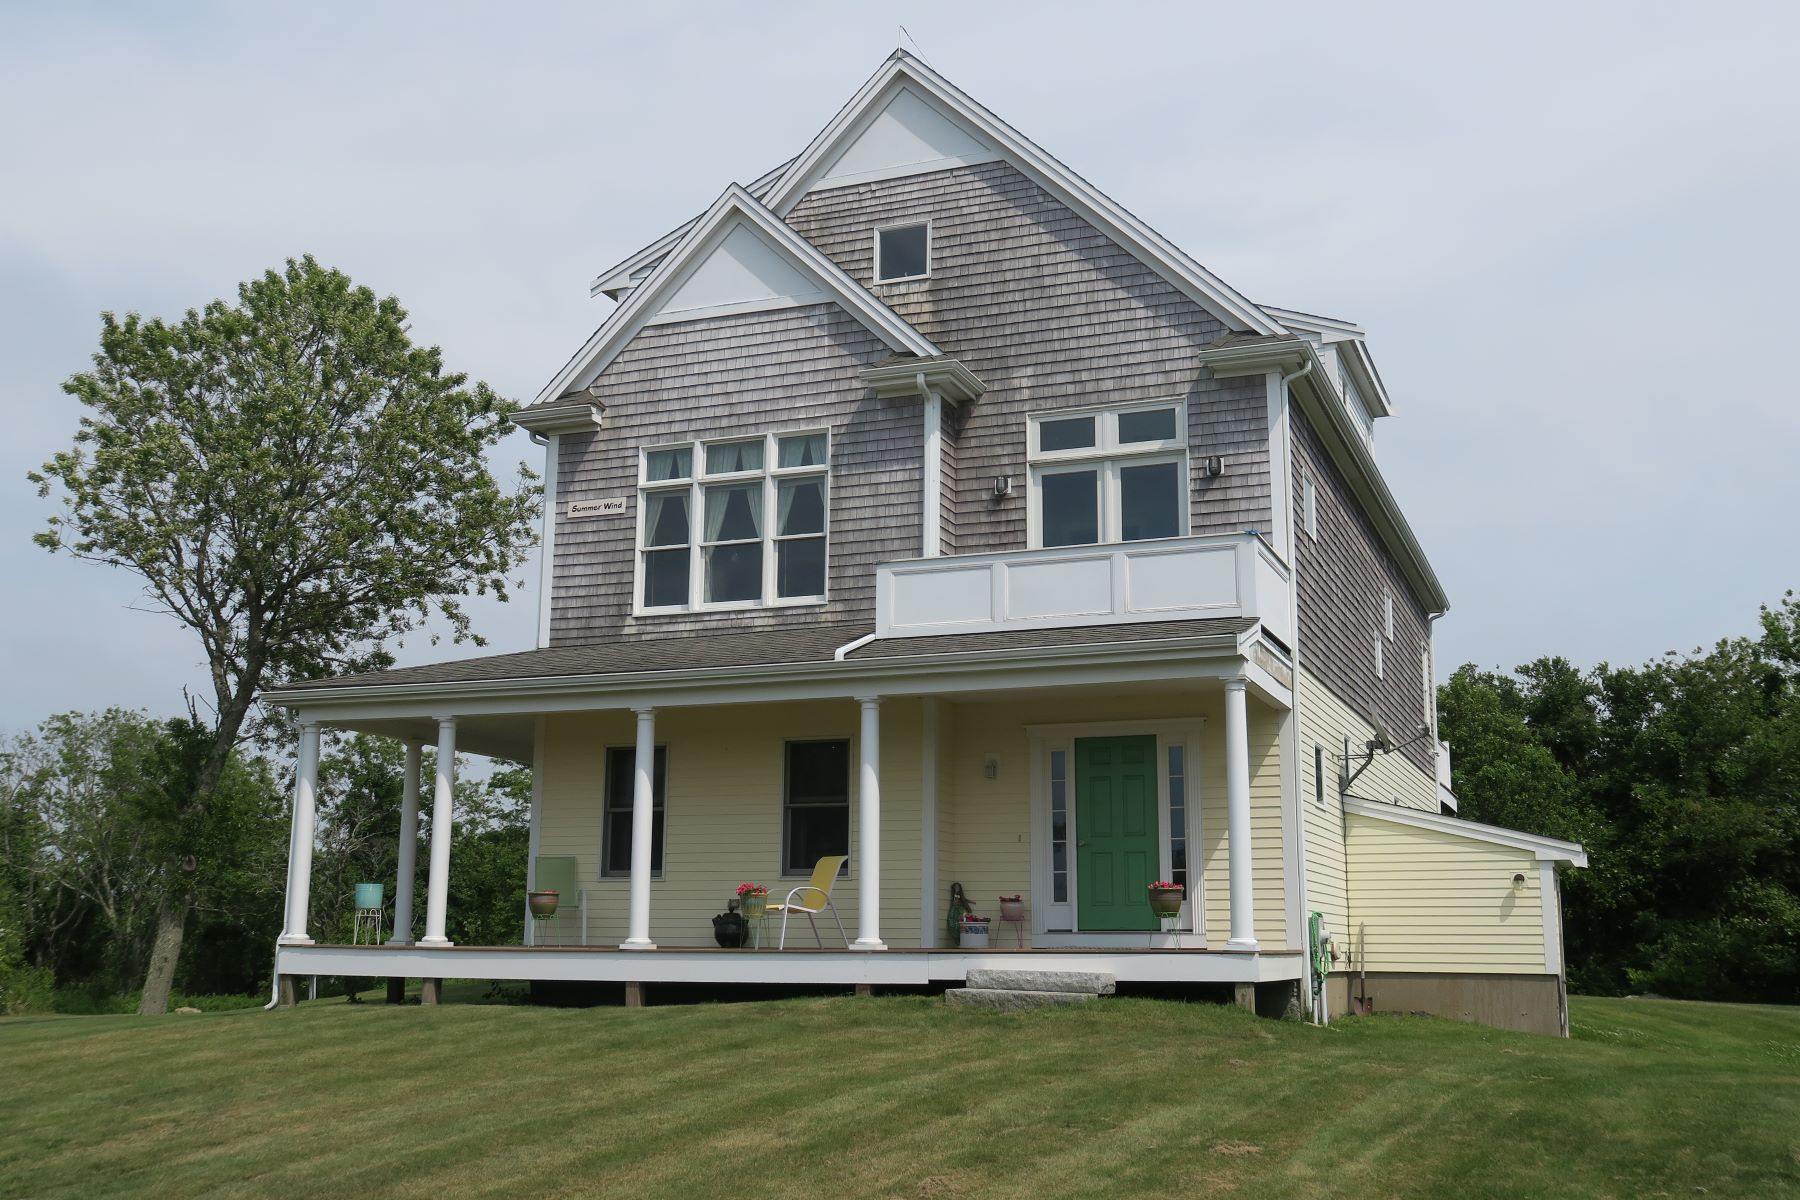 Single Family Homes for Sale at Gracious Home 1678 Lakeside Drive, Block Island, Rhode Island 02807 United States